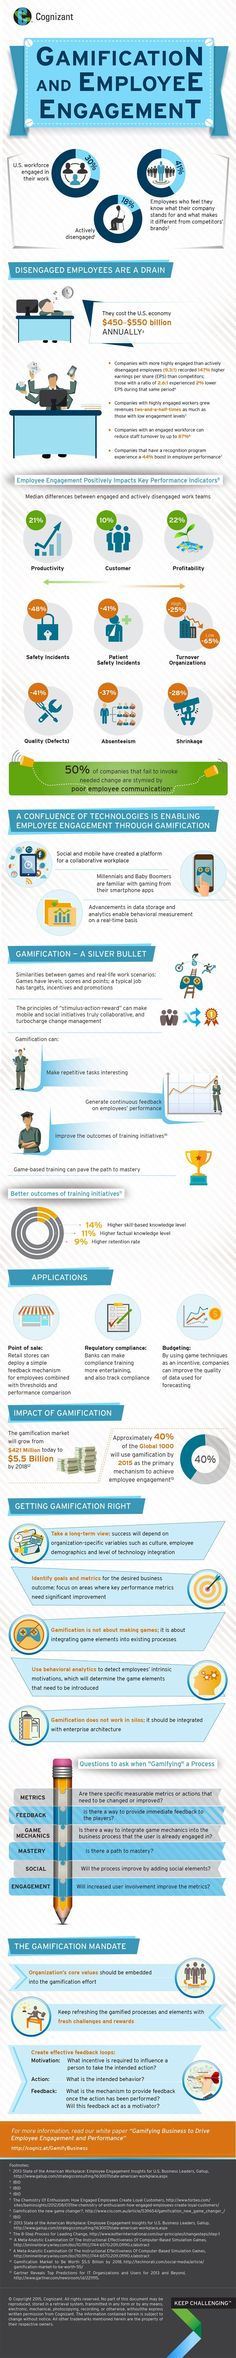 How Can #Gamification Improve Employee Engagement? #infographic